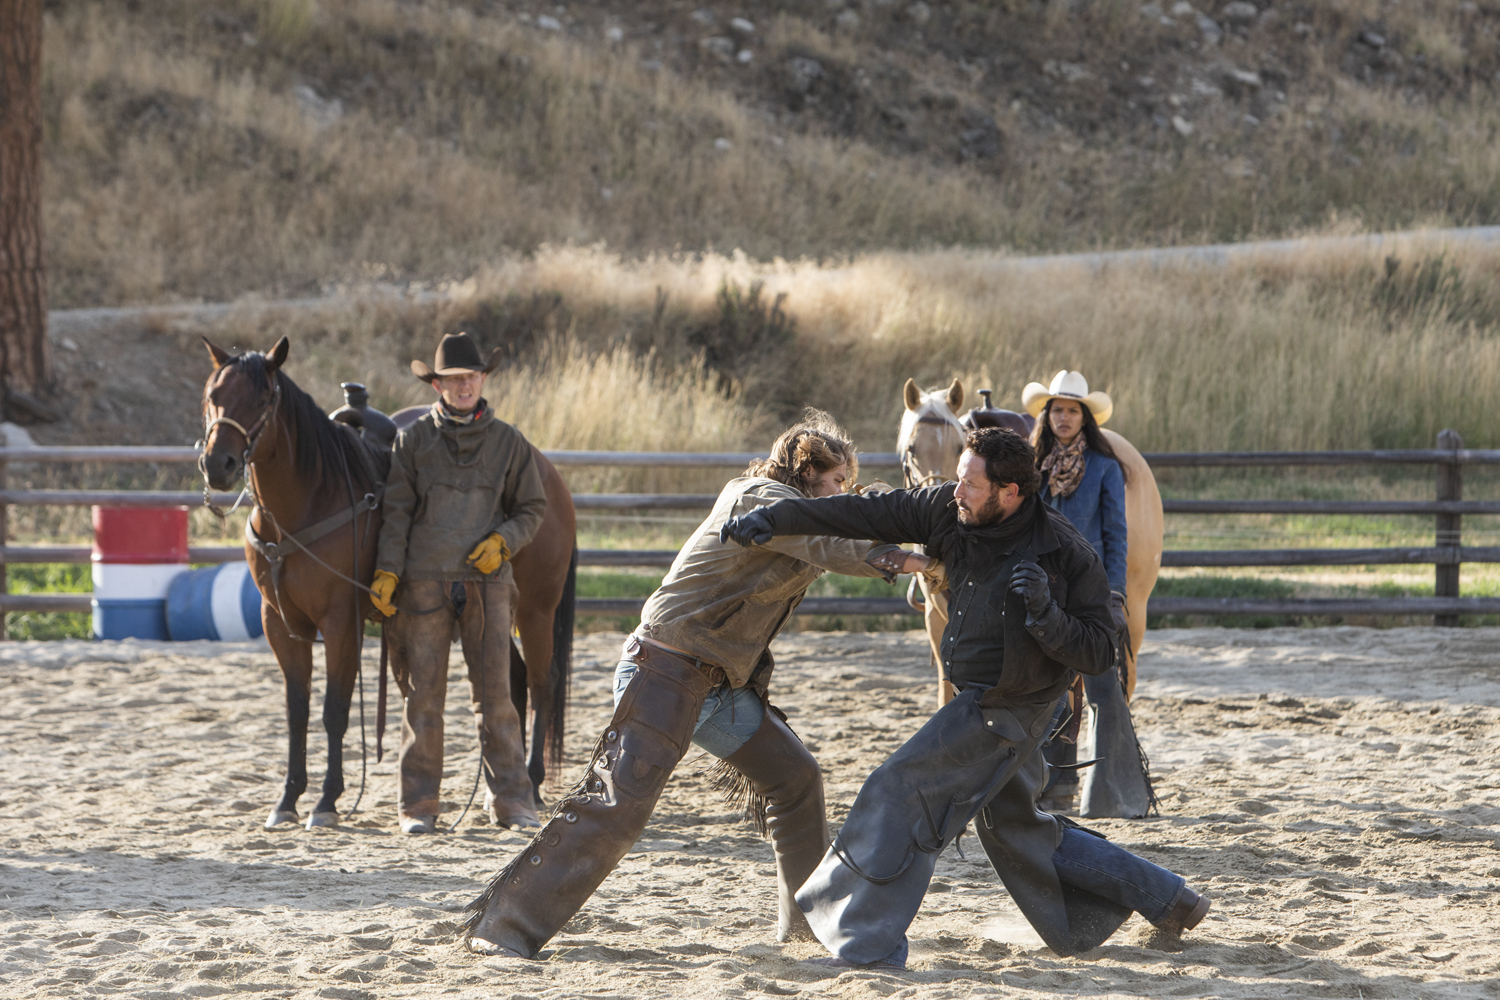 """Kayce (L-Luke Grimes) and Rip (R-Cole Hauser) come to blows on Yellowstone season 2 episode """"New Beginnings"""" airing on Wednesday, June 26 at 10 p.m., ET/PT on Paramount Network. (Credit: Paramount Network)"""